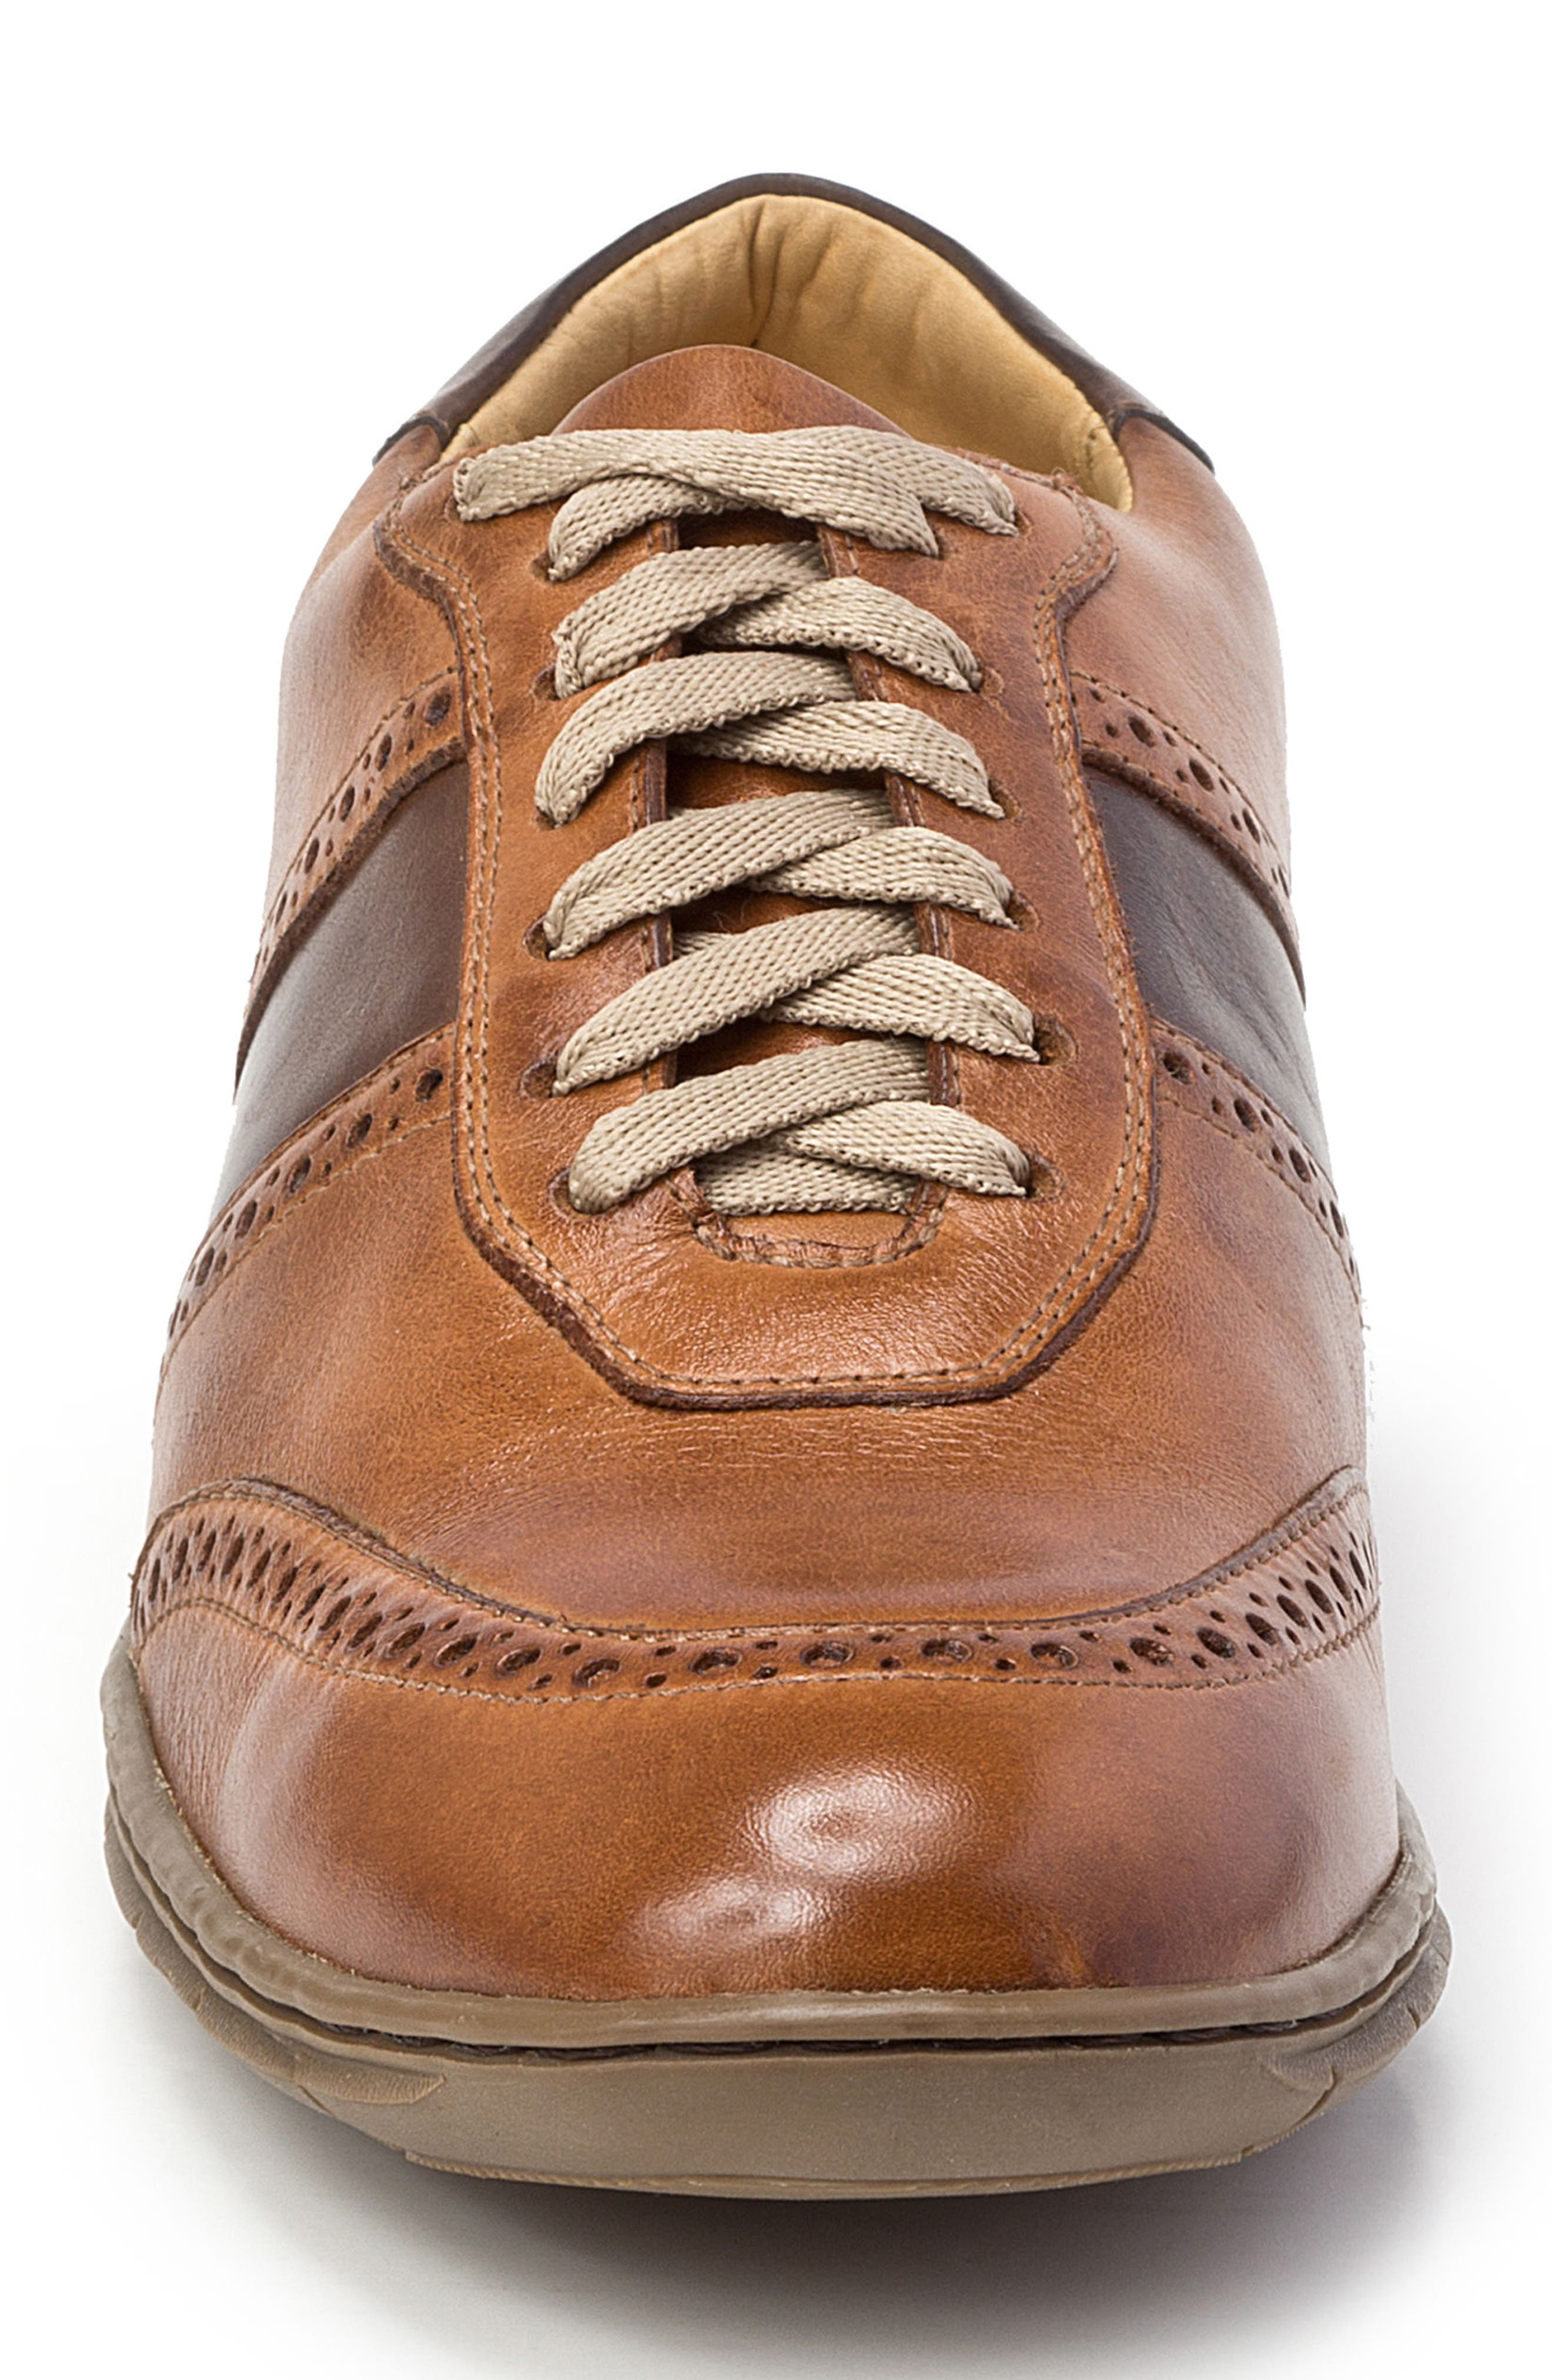 Norris Sneaker,                             Alternate thumbnail 4, color,                             Tan Leather